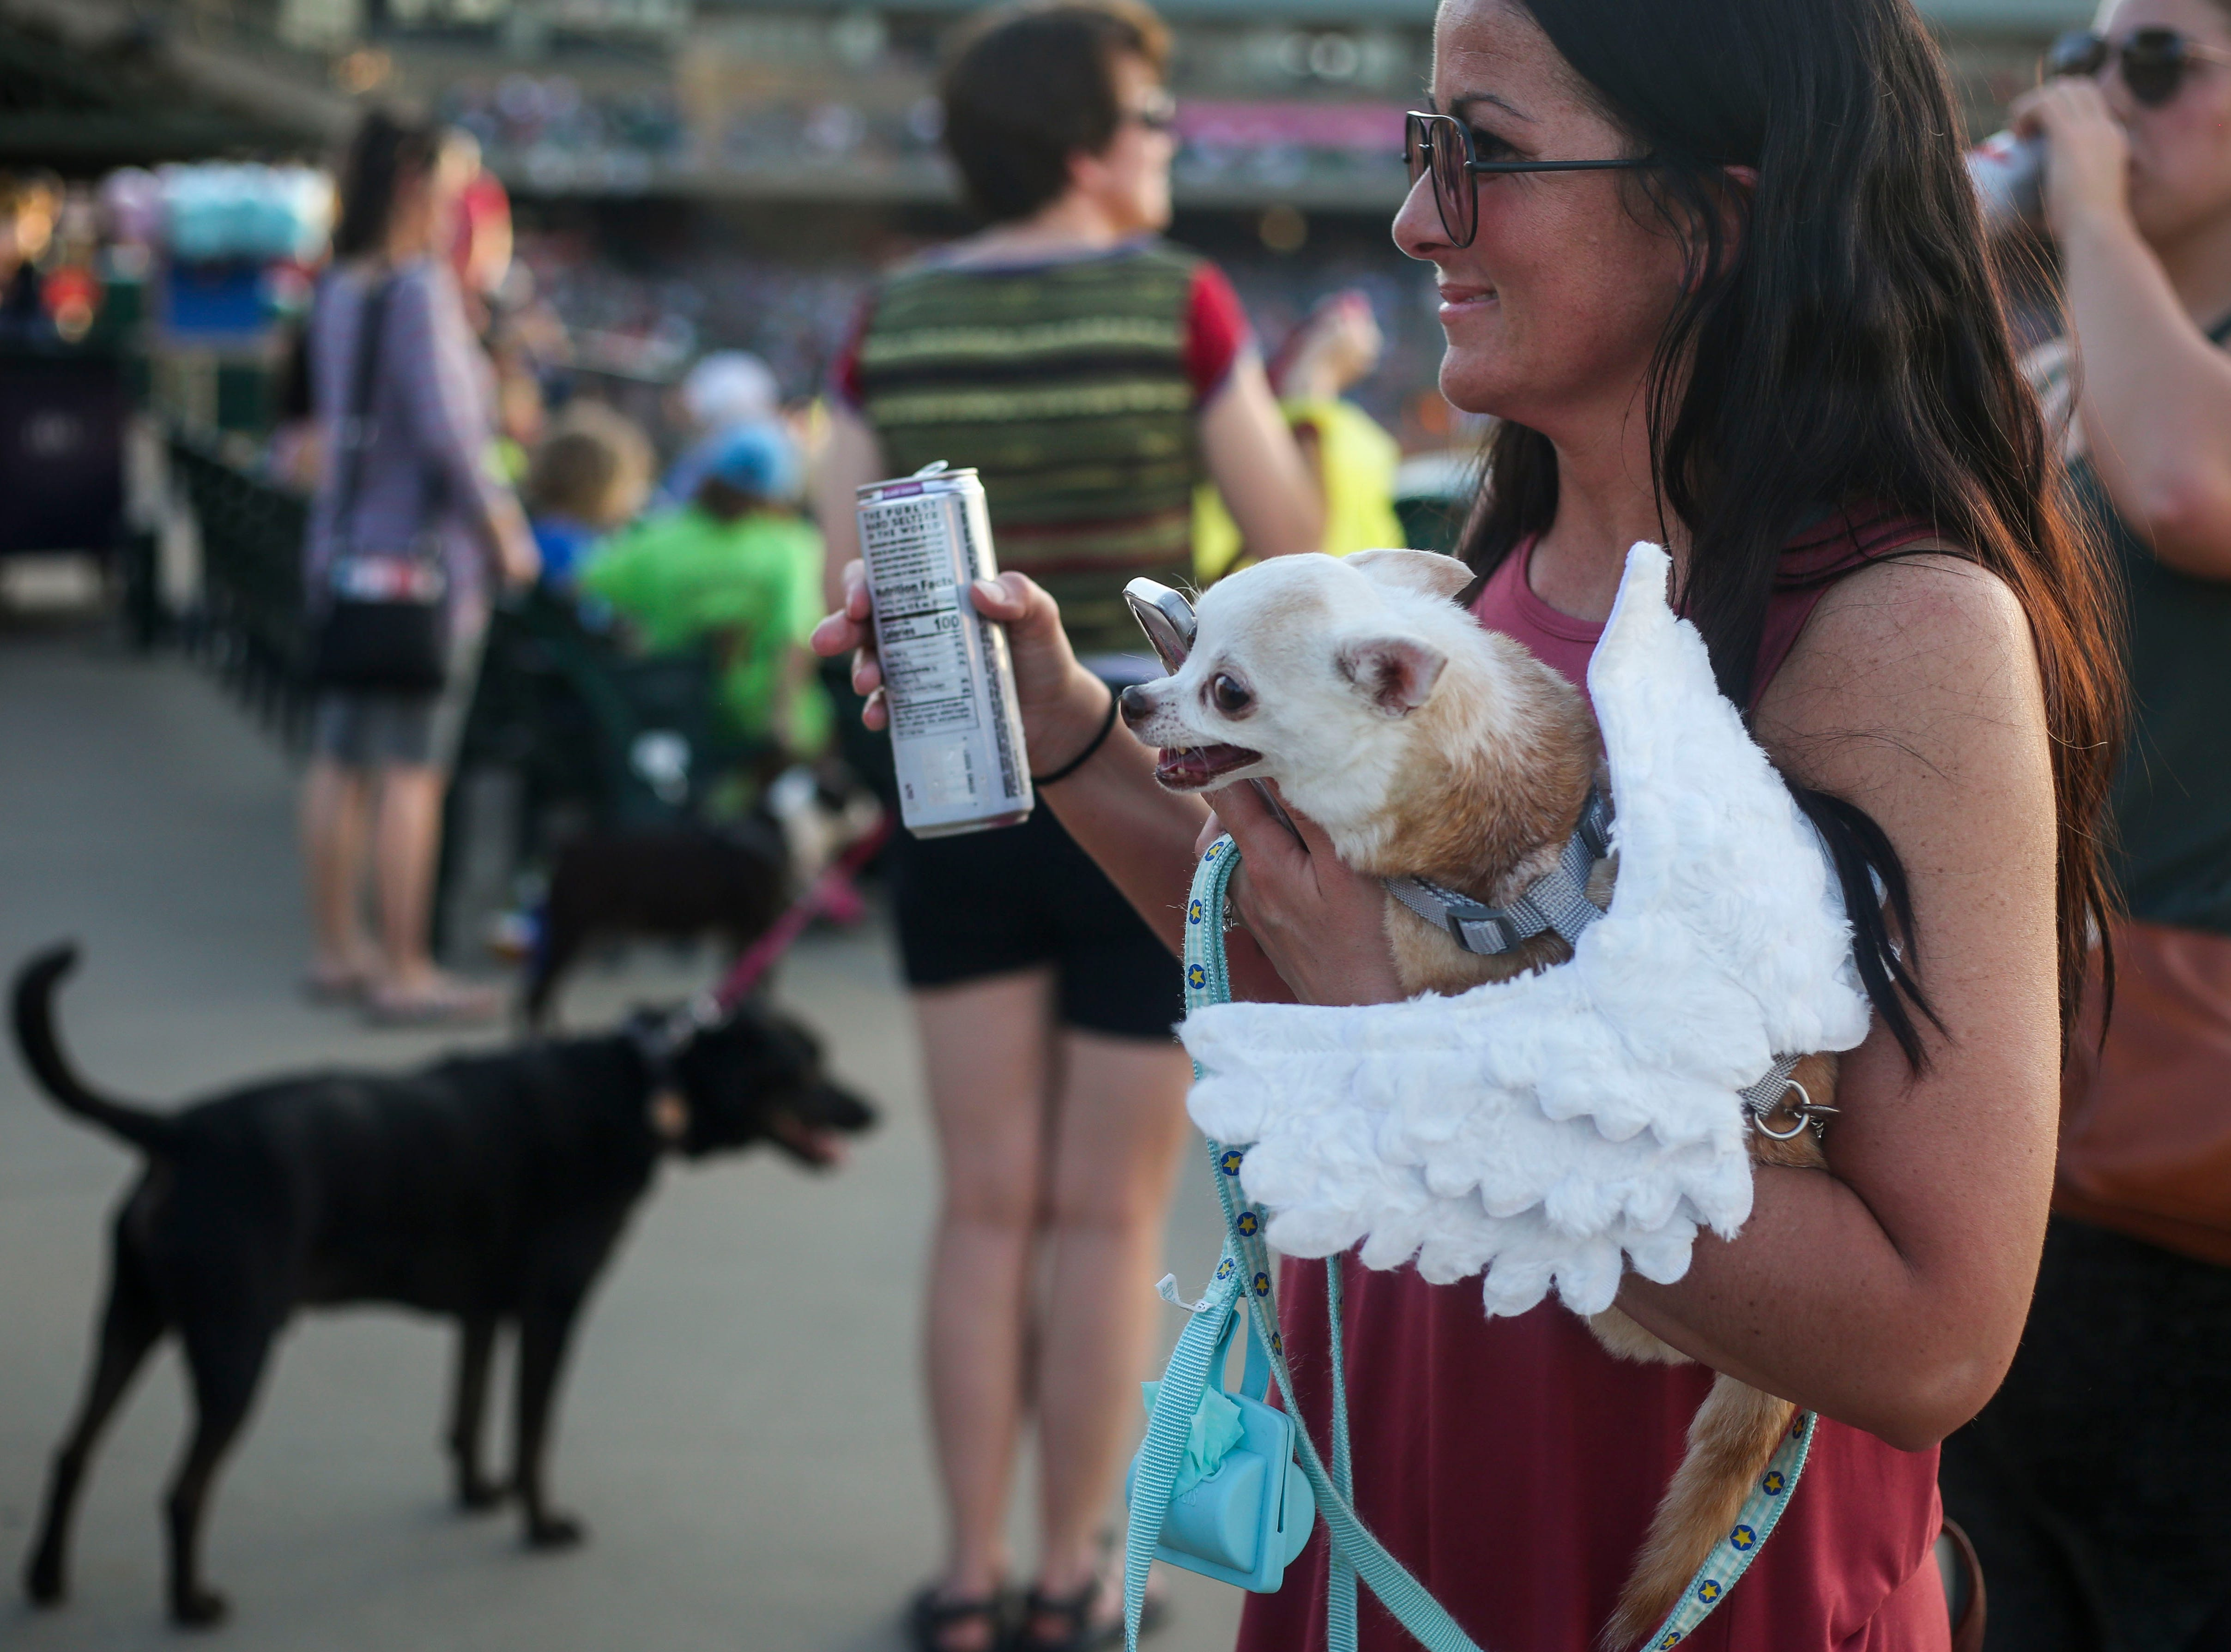 Megan Wolfe carries Lola during the Louisville Bats v. Syracuse Mets game during Dog Day Nights at Louisville Slugger Field in downtown Louisville, Ky. on Tuesday, May 7, 2019.